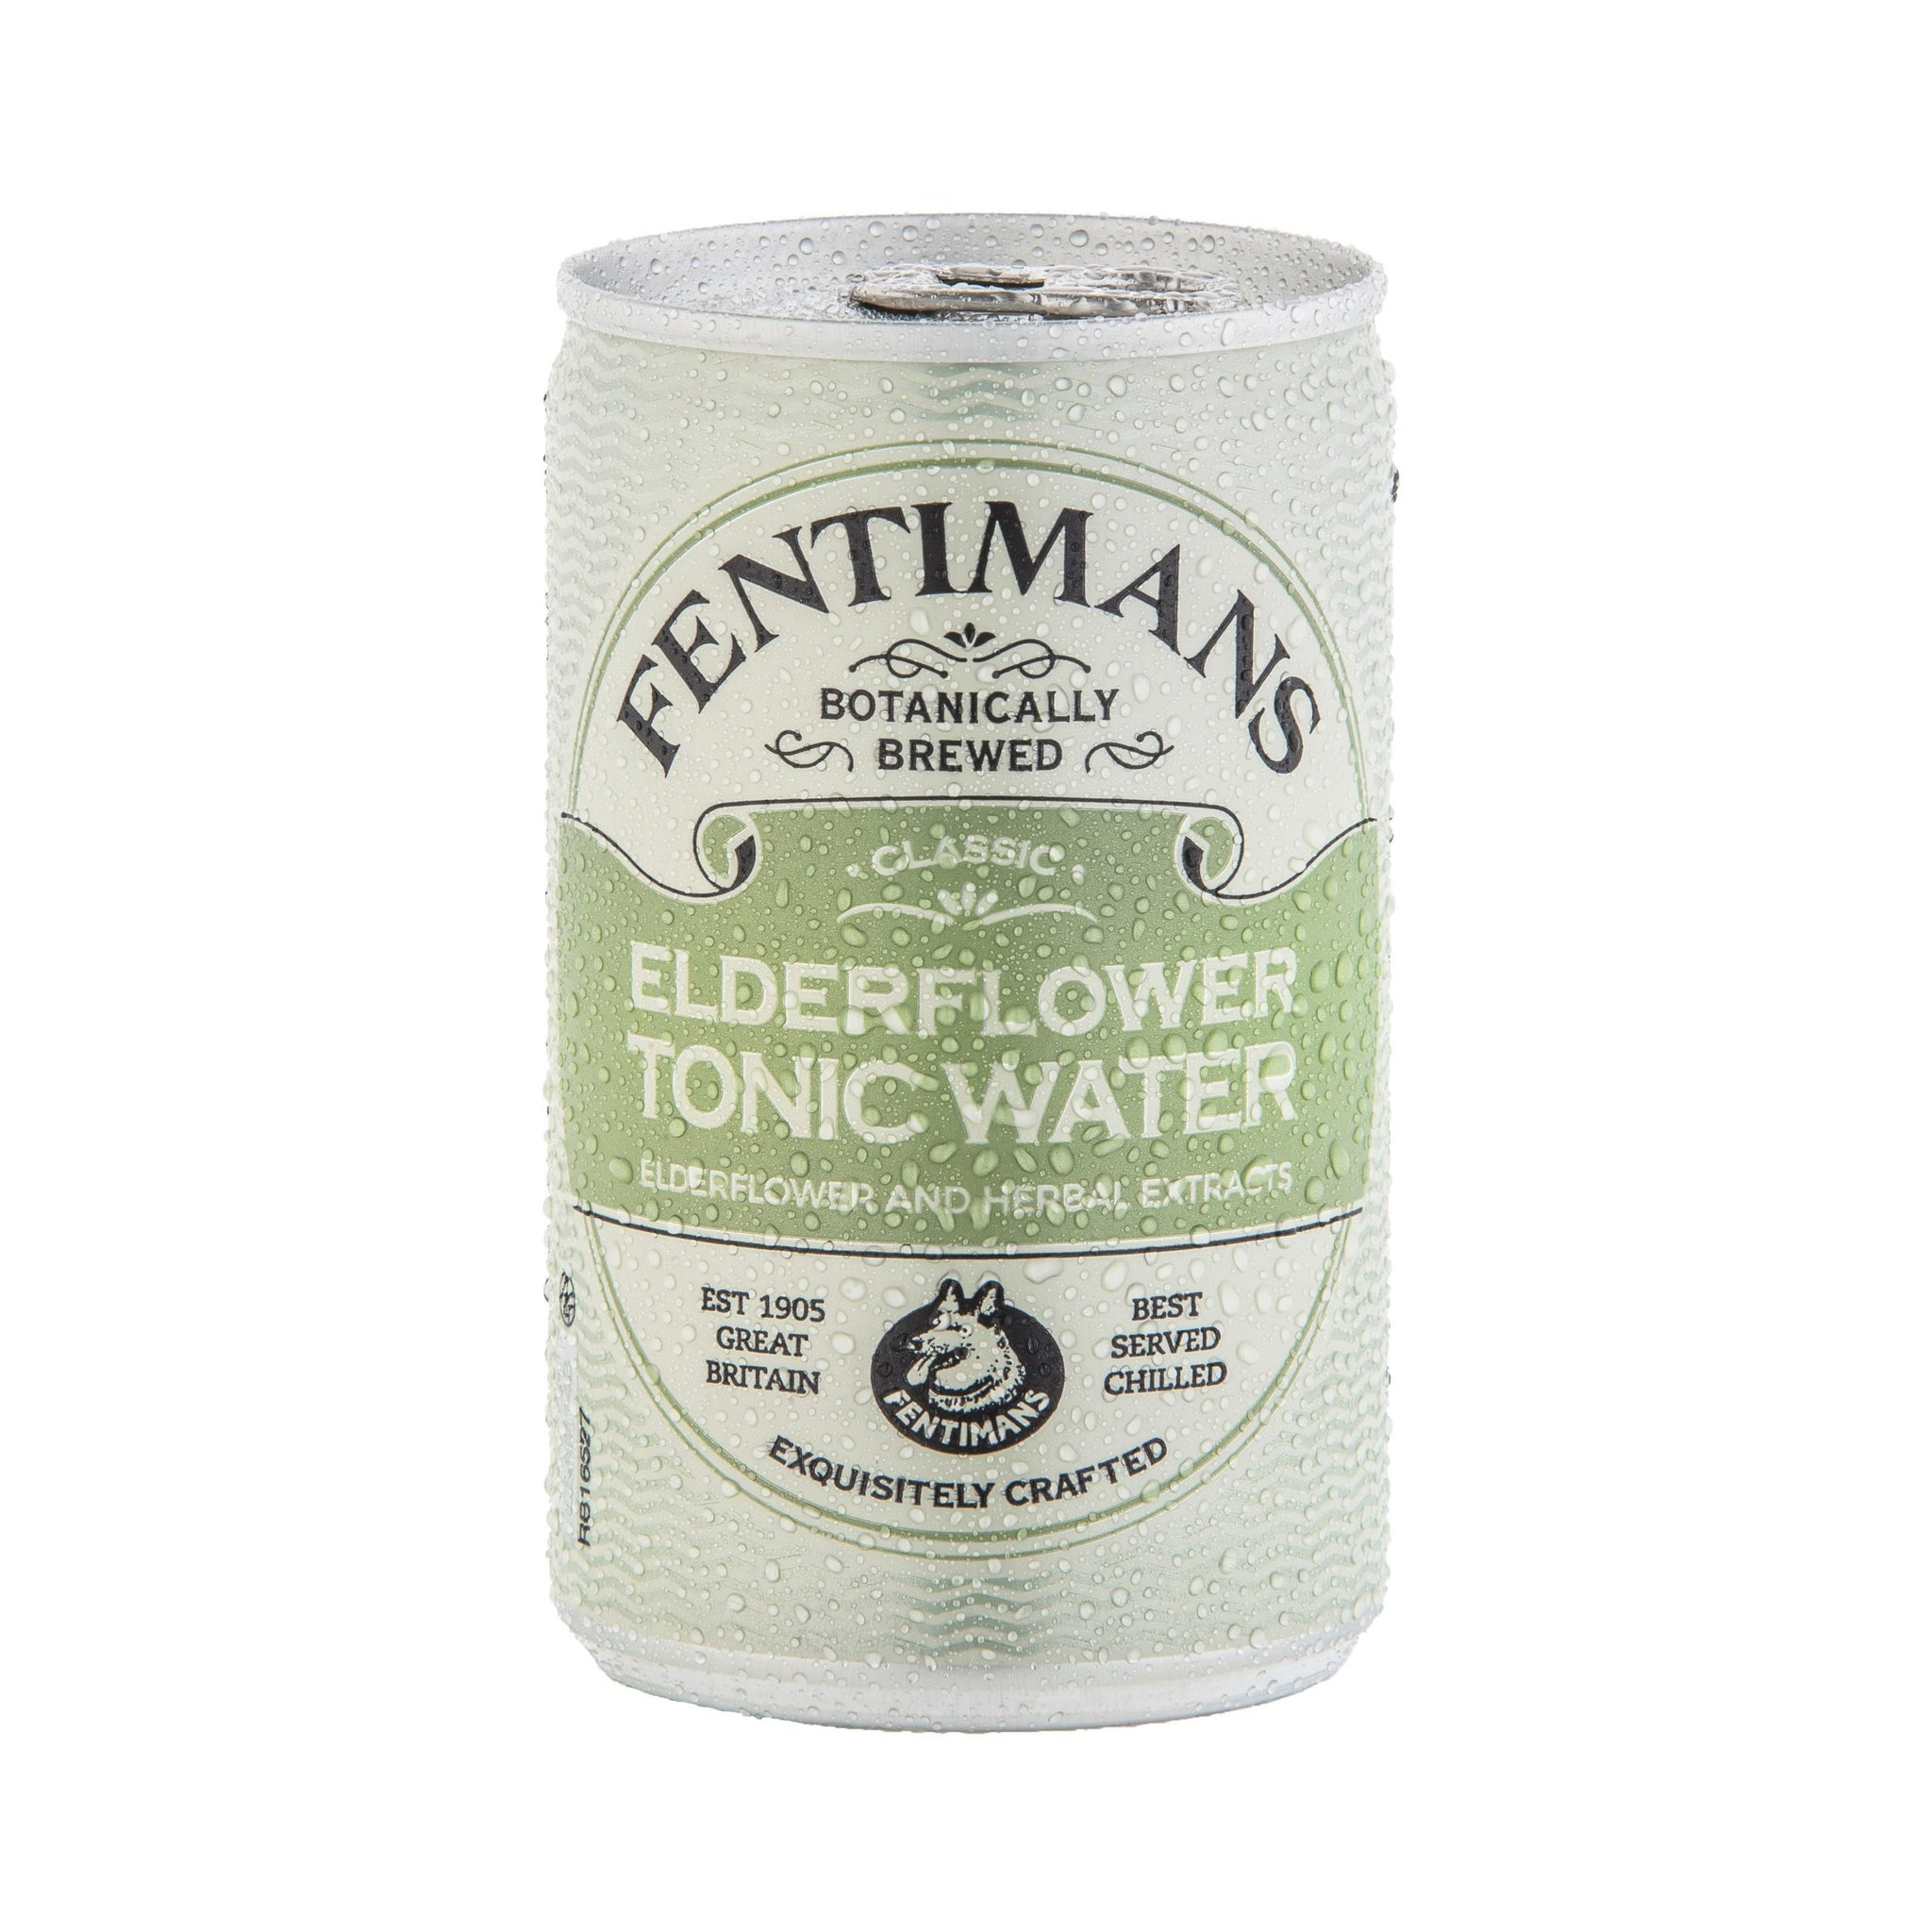 Fentimans Elderflower Tonic Water - 15cl